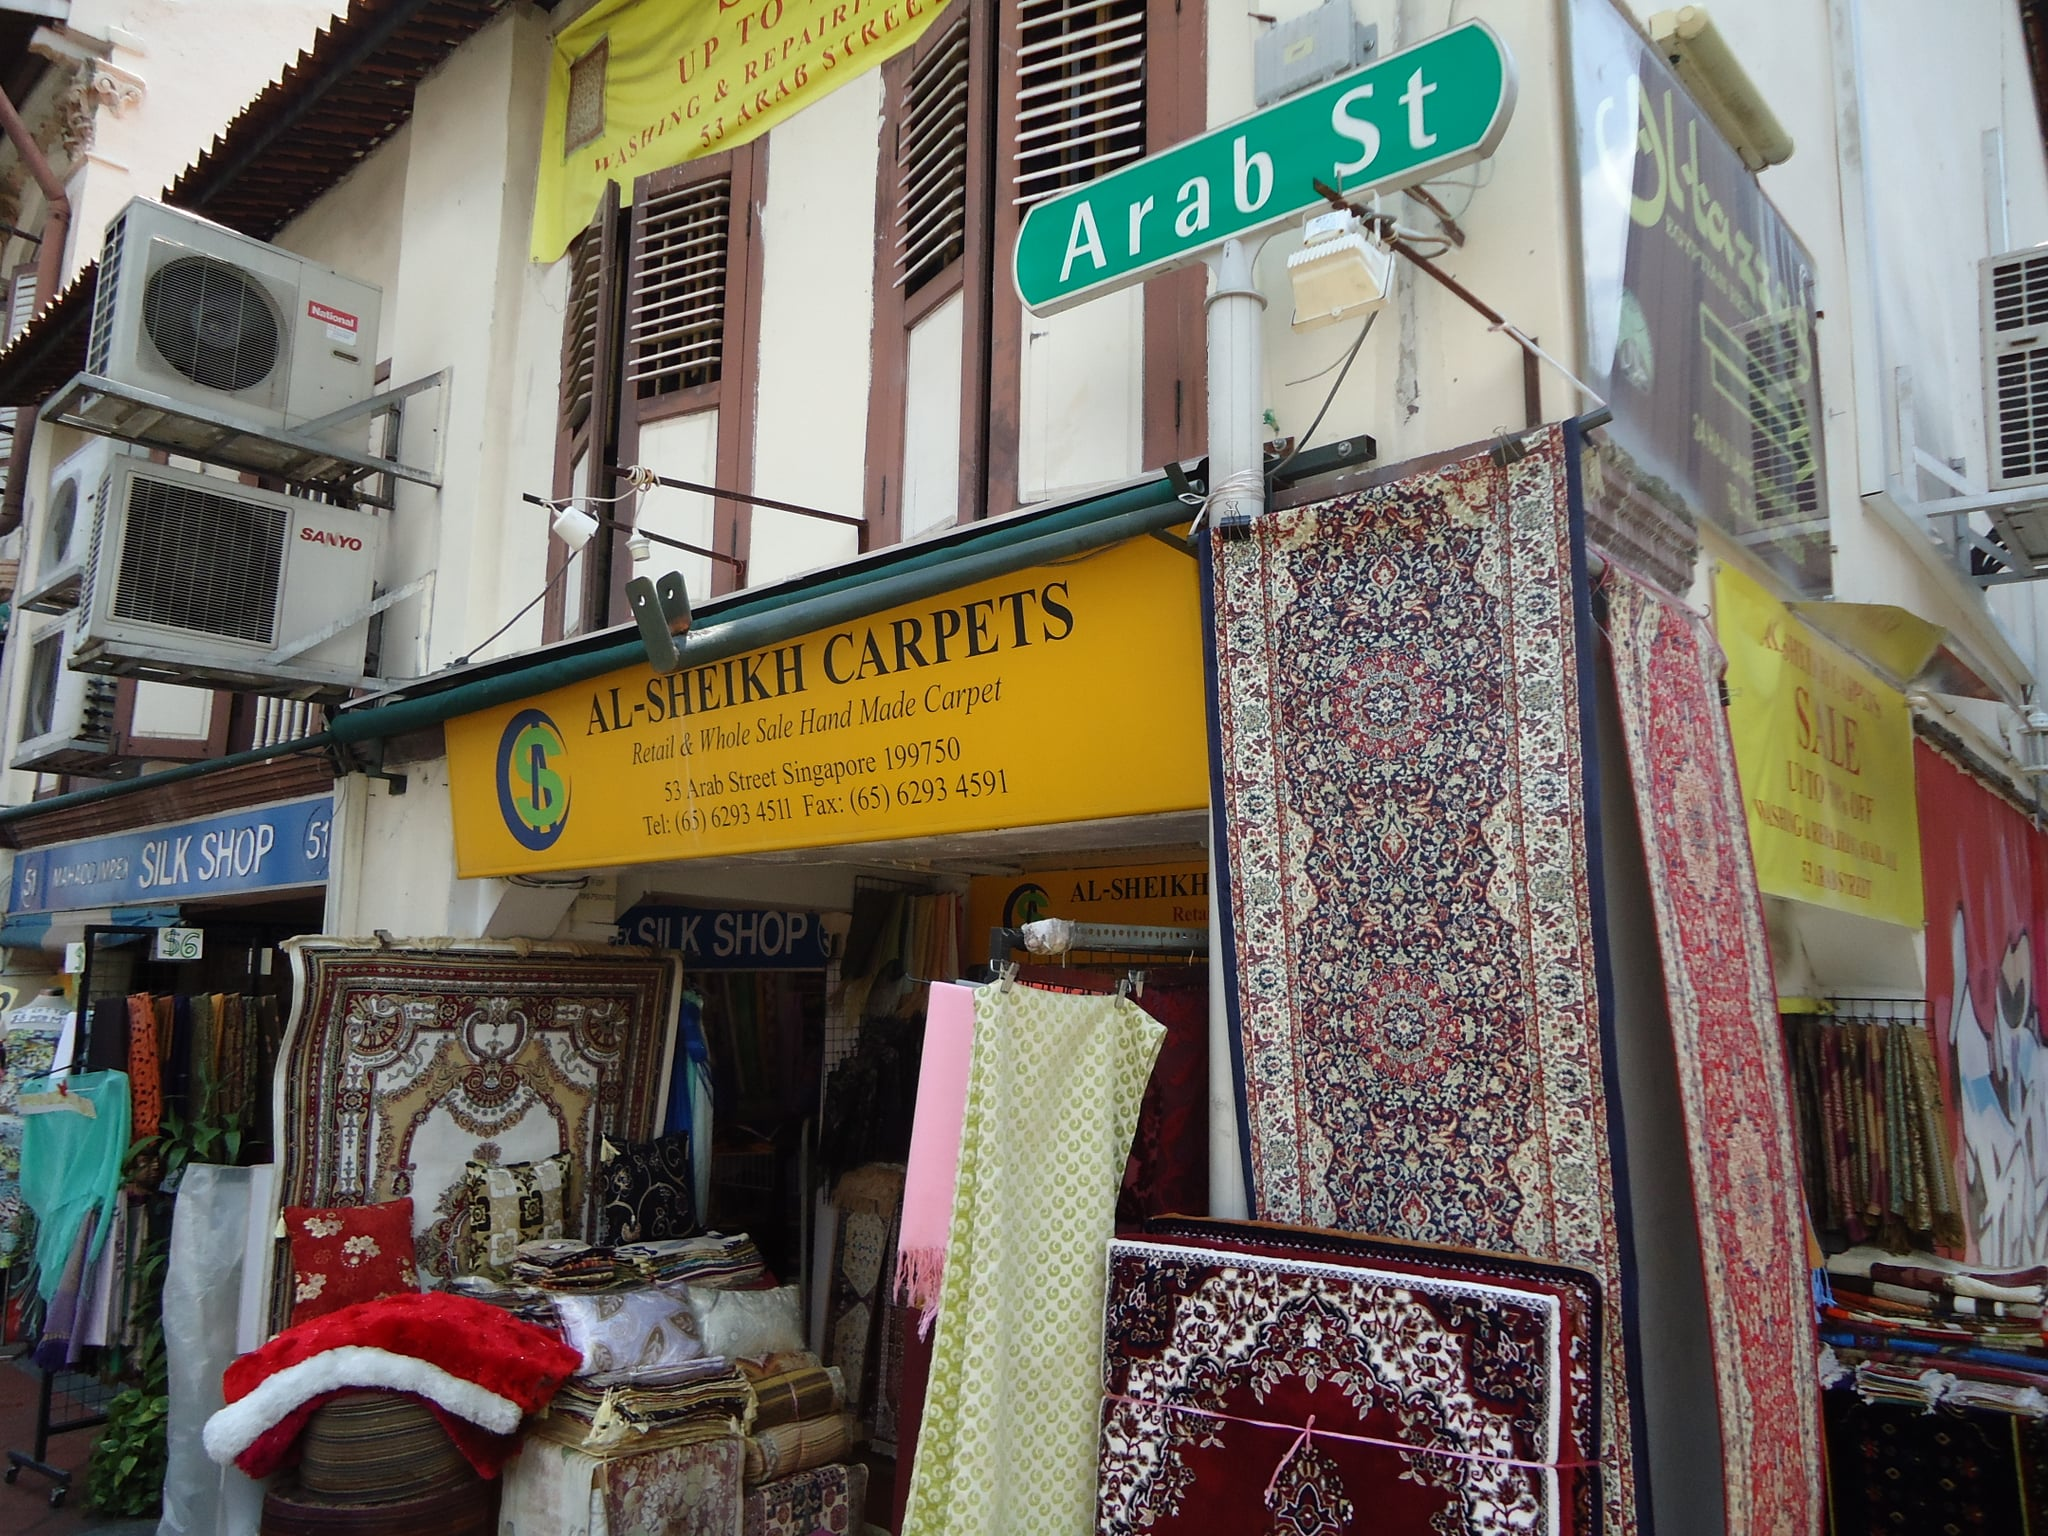 Arab Street was a fabulous cultural crush of prints, fabrics, colours and smells.